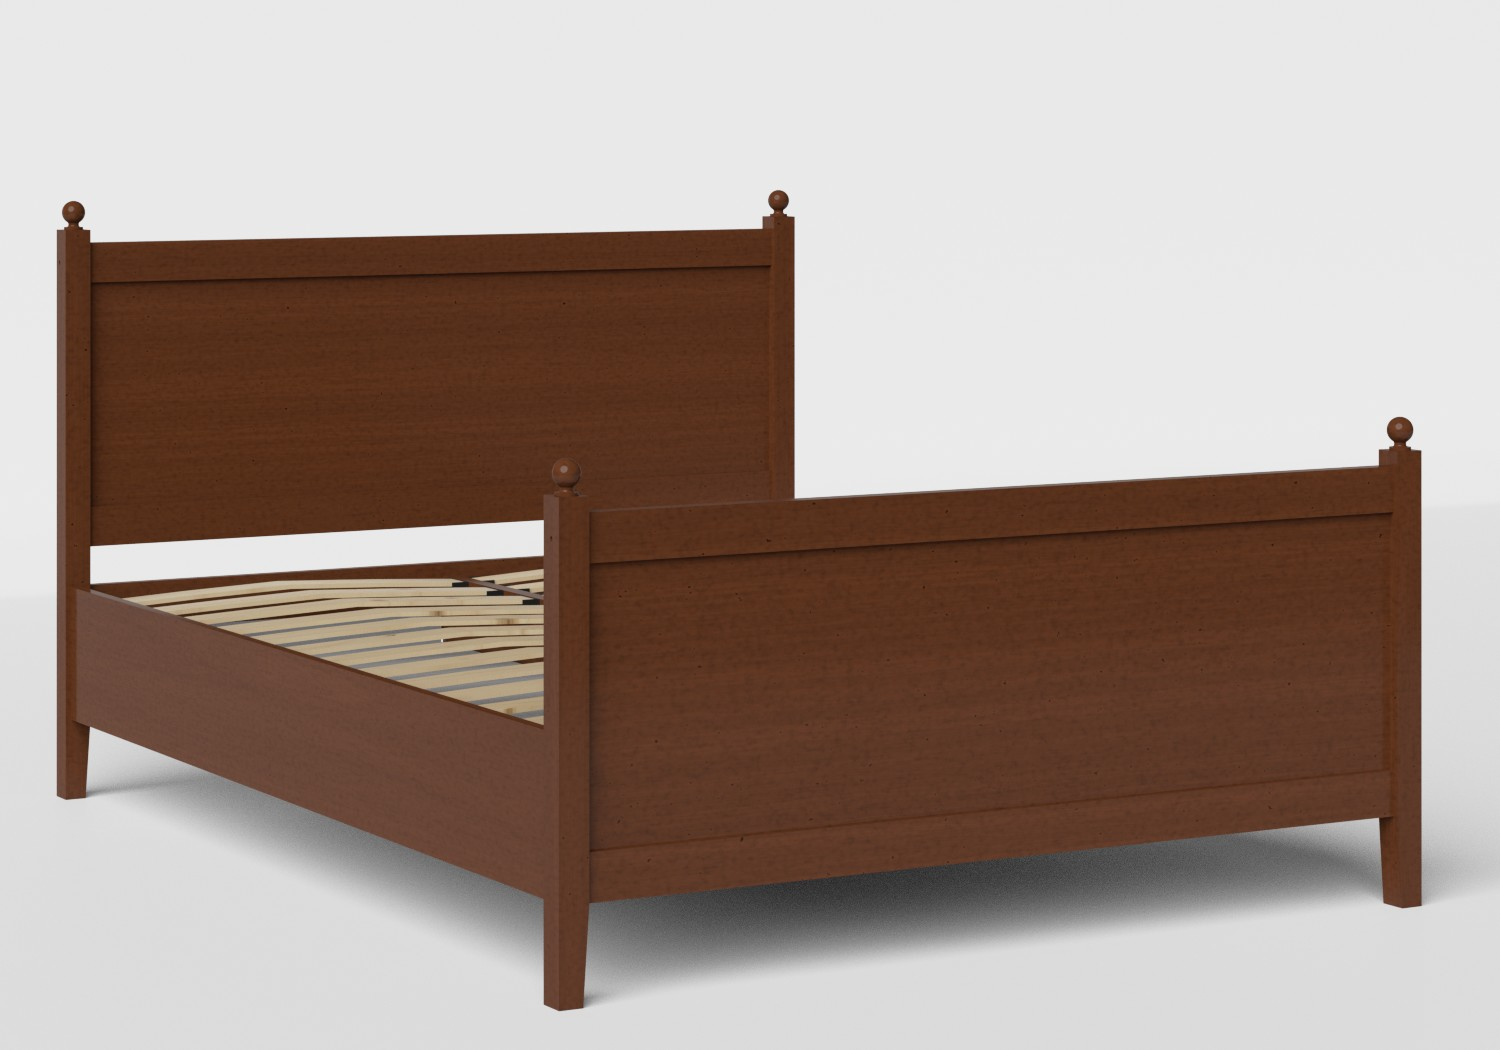 Marbella Wood Bed in Dark Cherry shown with slatted frame